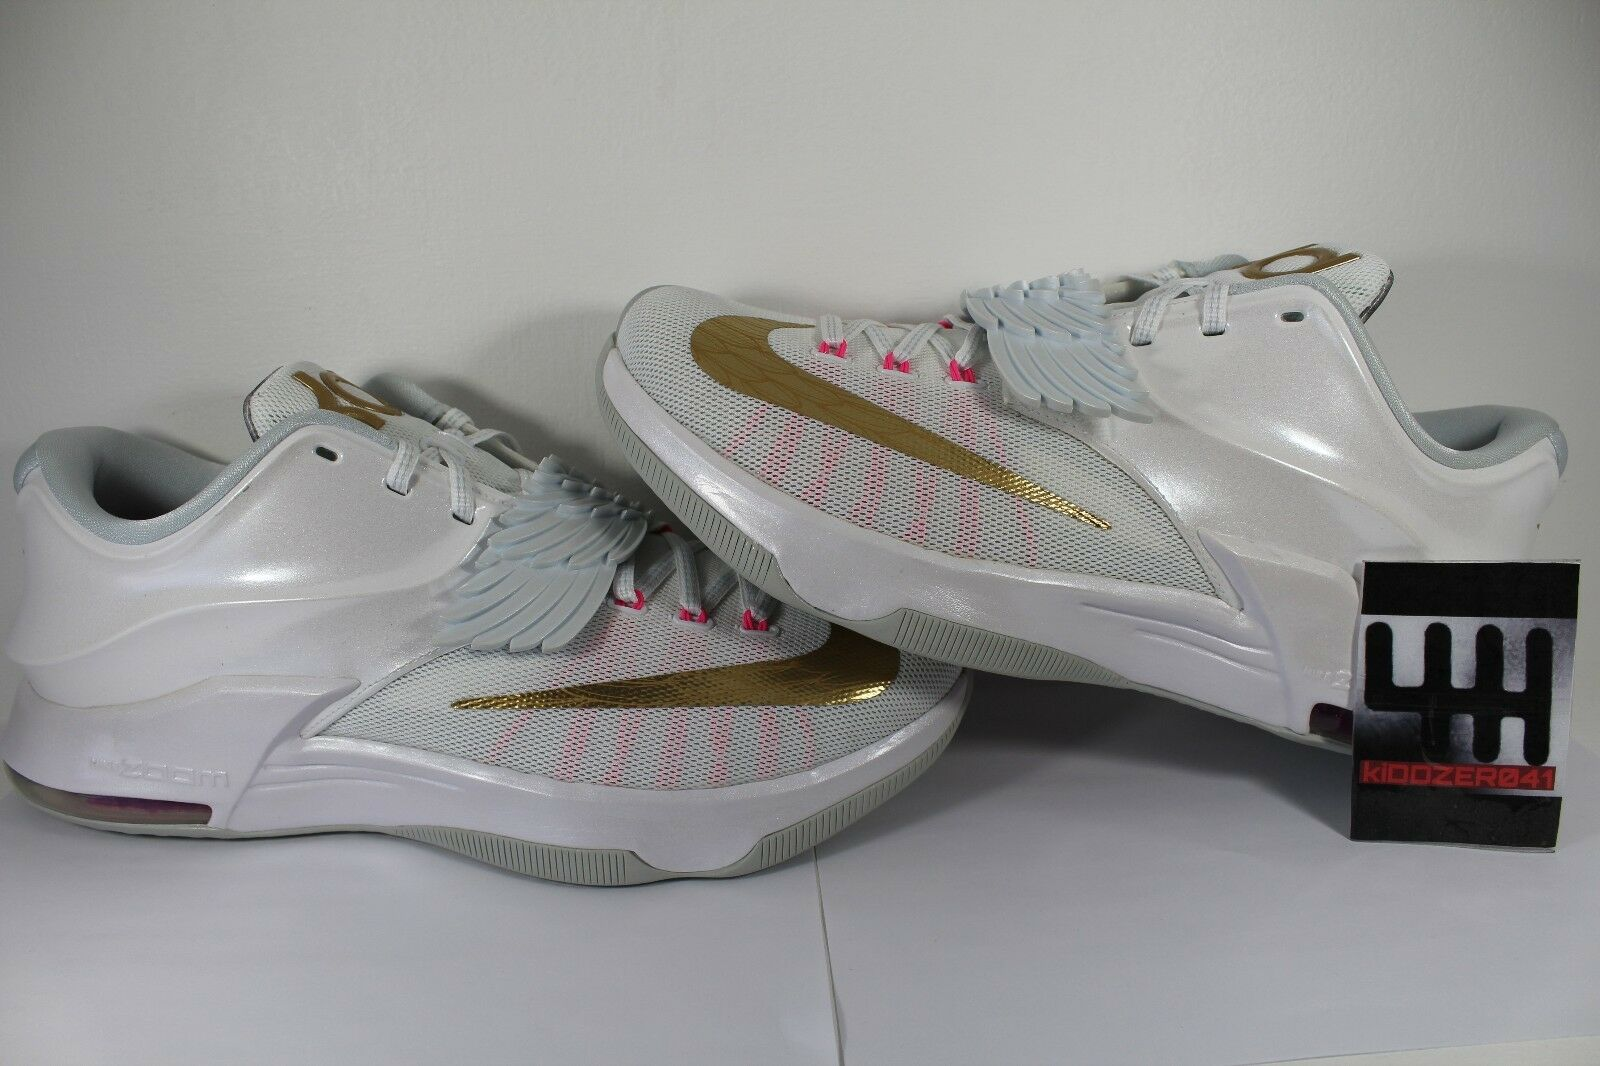 NIKE KD 7 AUNT PEARL SZ NEW 13 NEW SZ DS 100%AUTHENTIC KYRIE LEBRON YEEZY FOAMPOSITE 12 141600